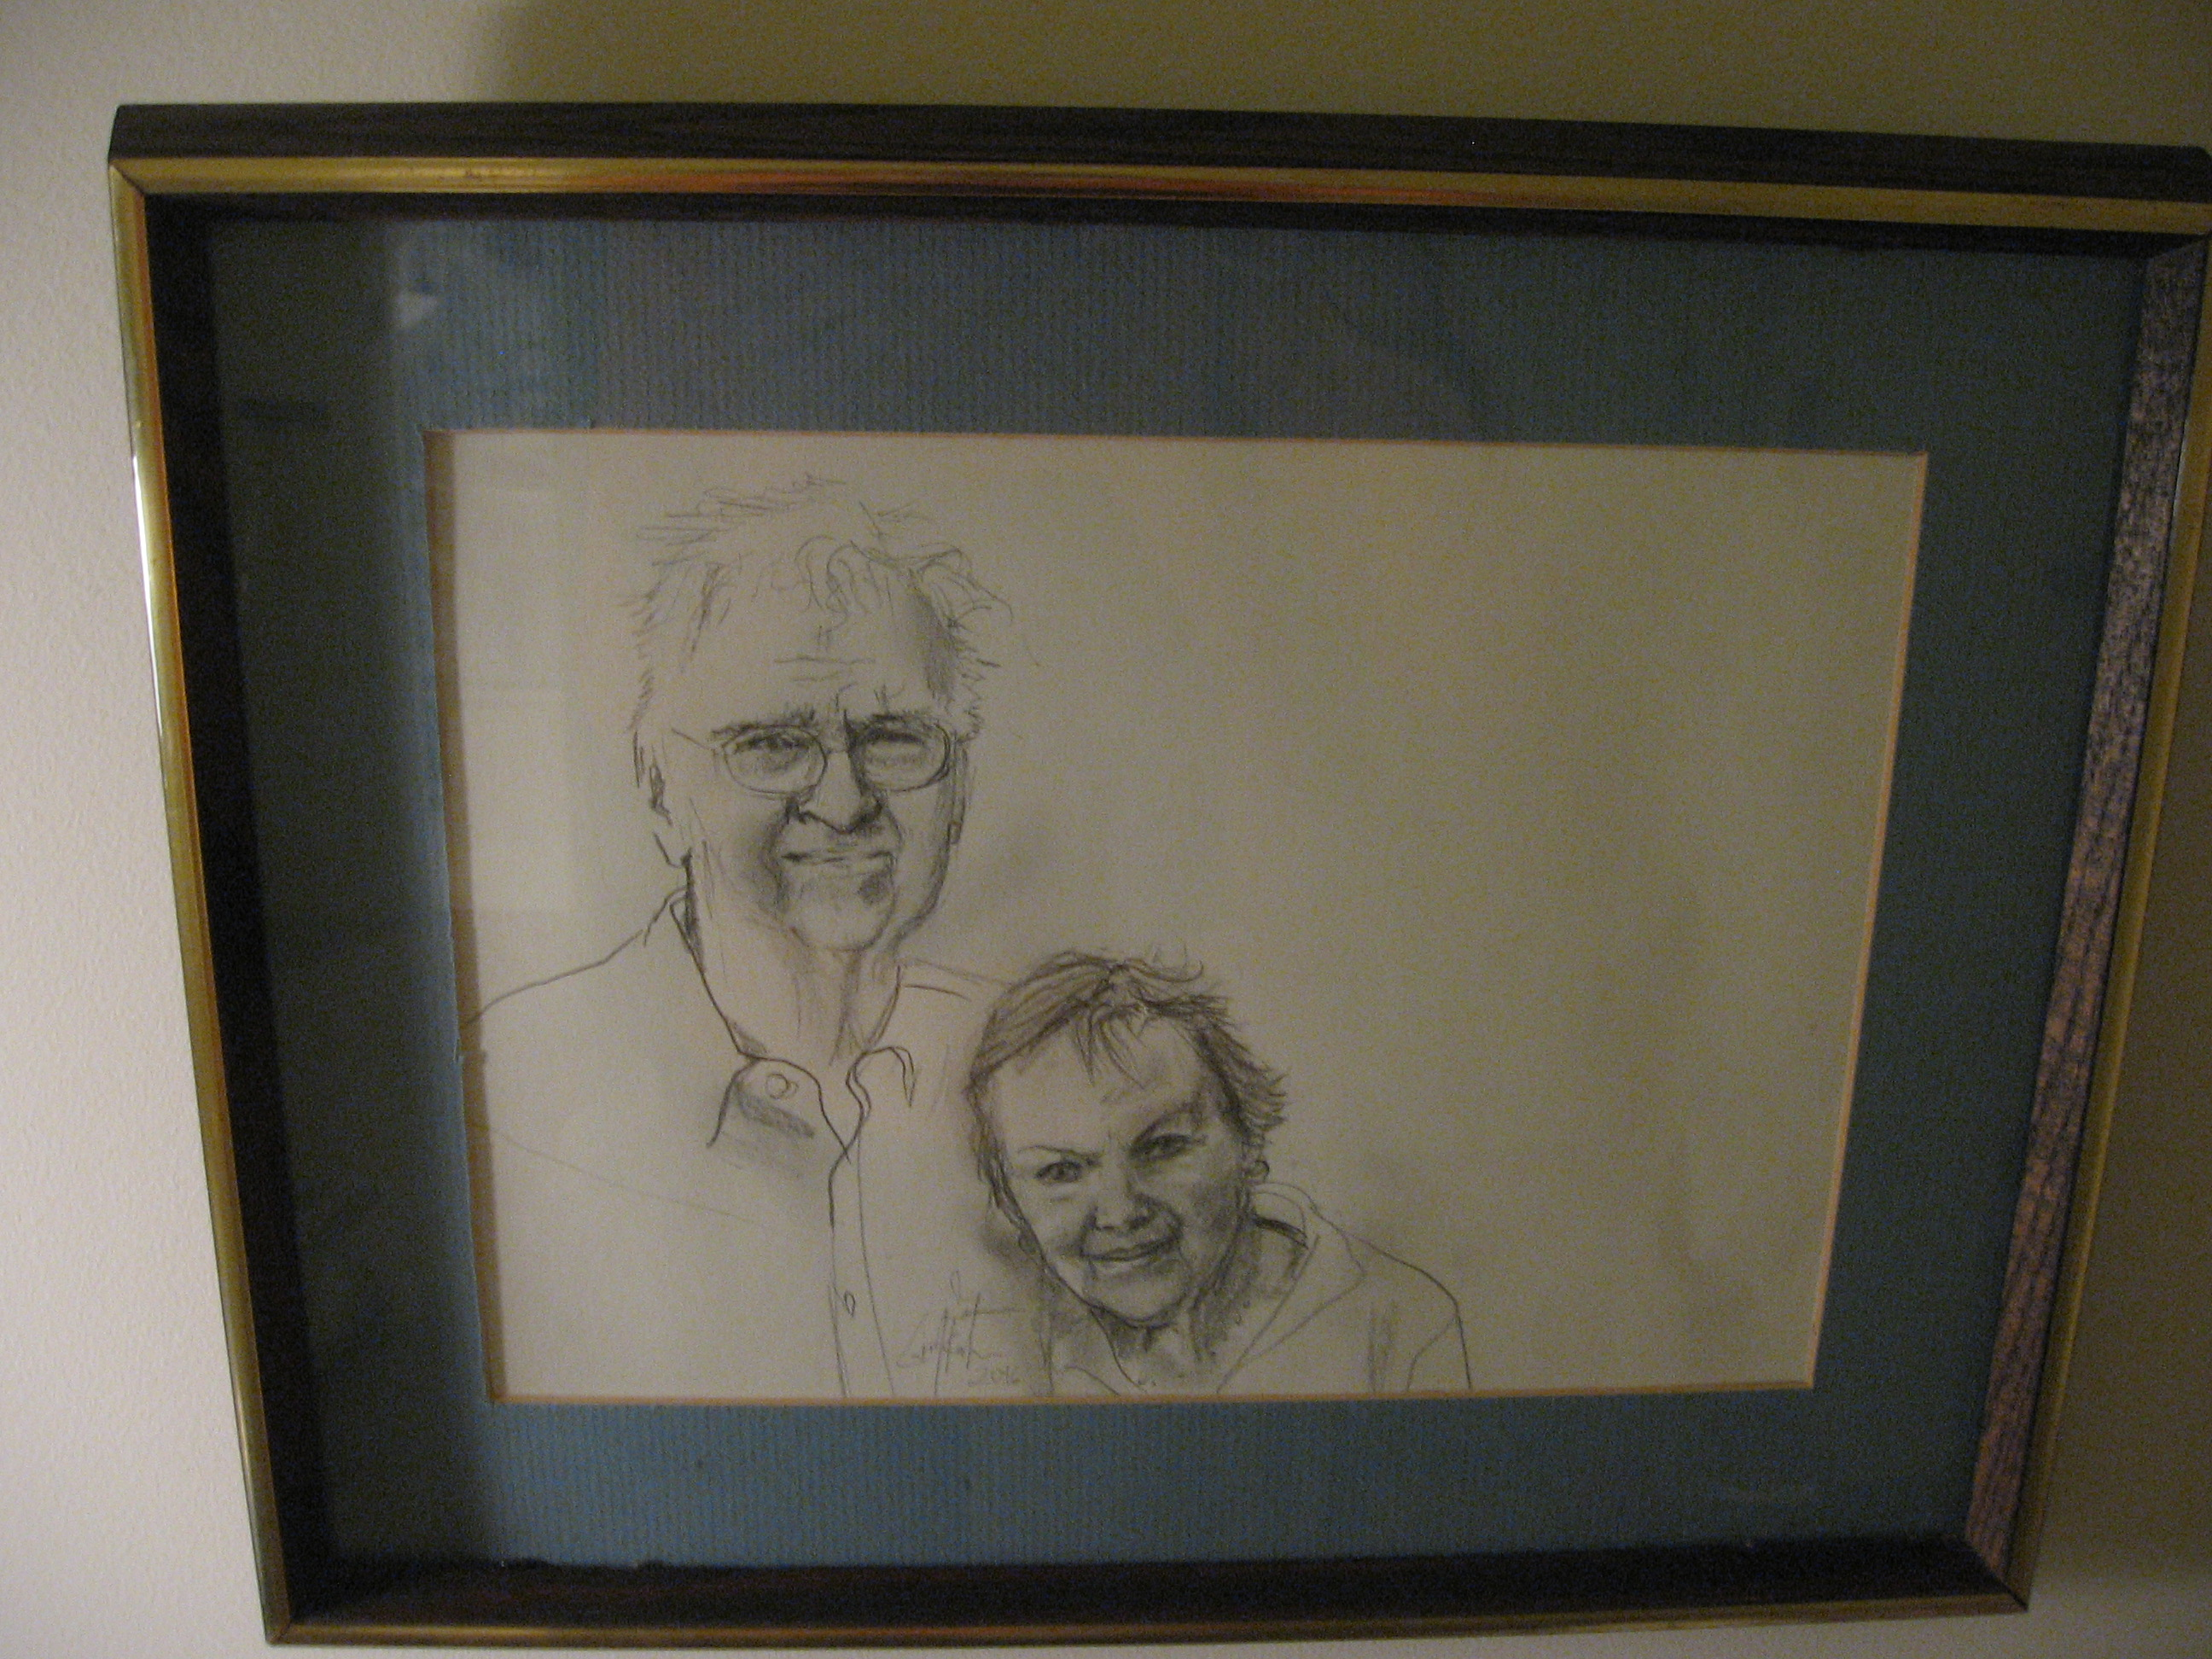 sketch by Carol, daughter of James and Lois Keiter